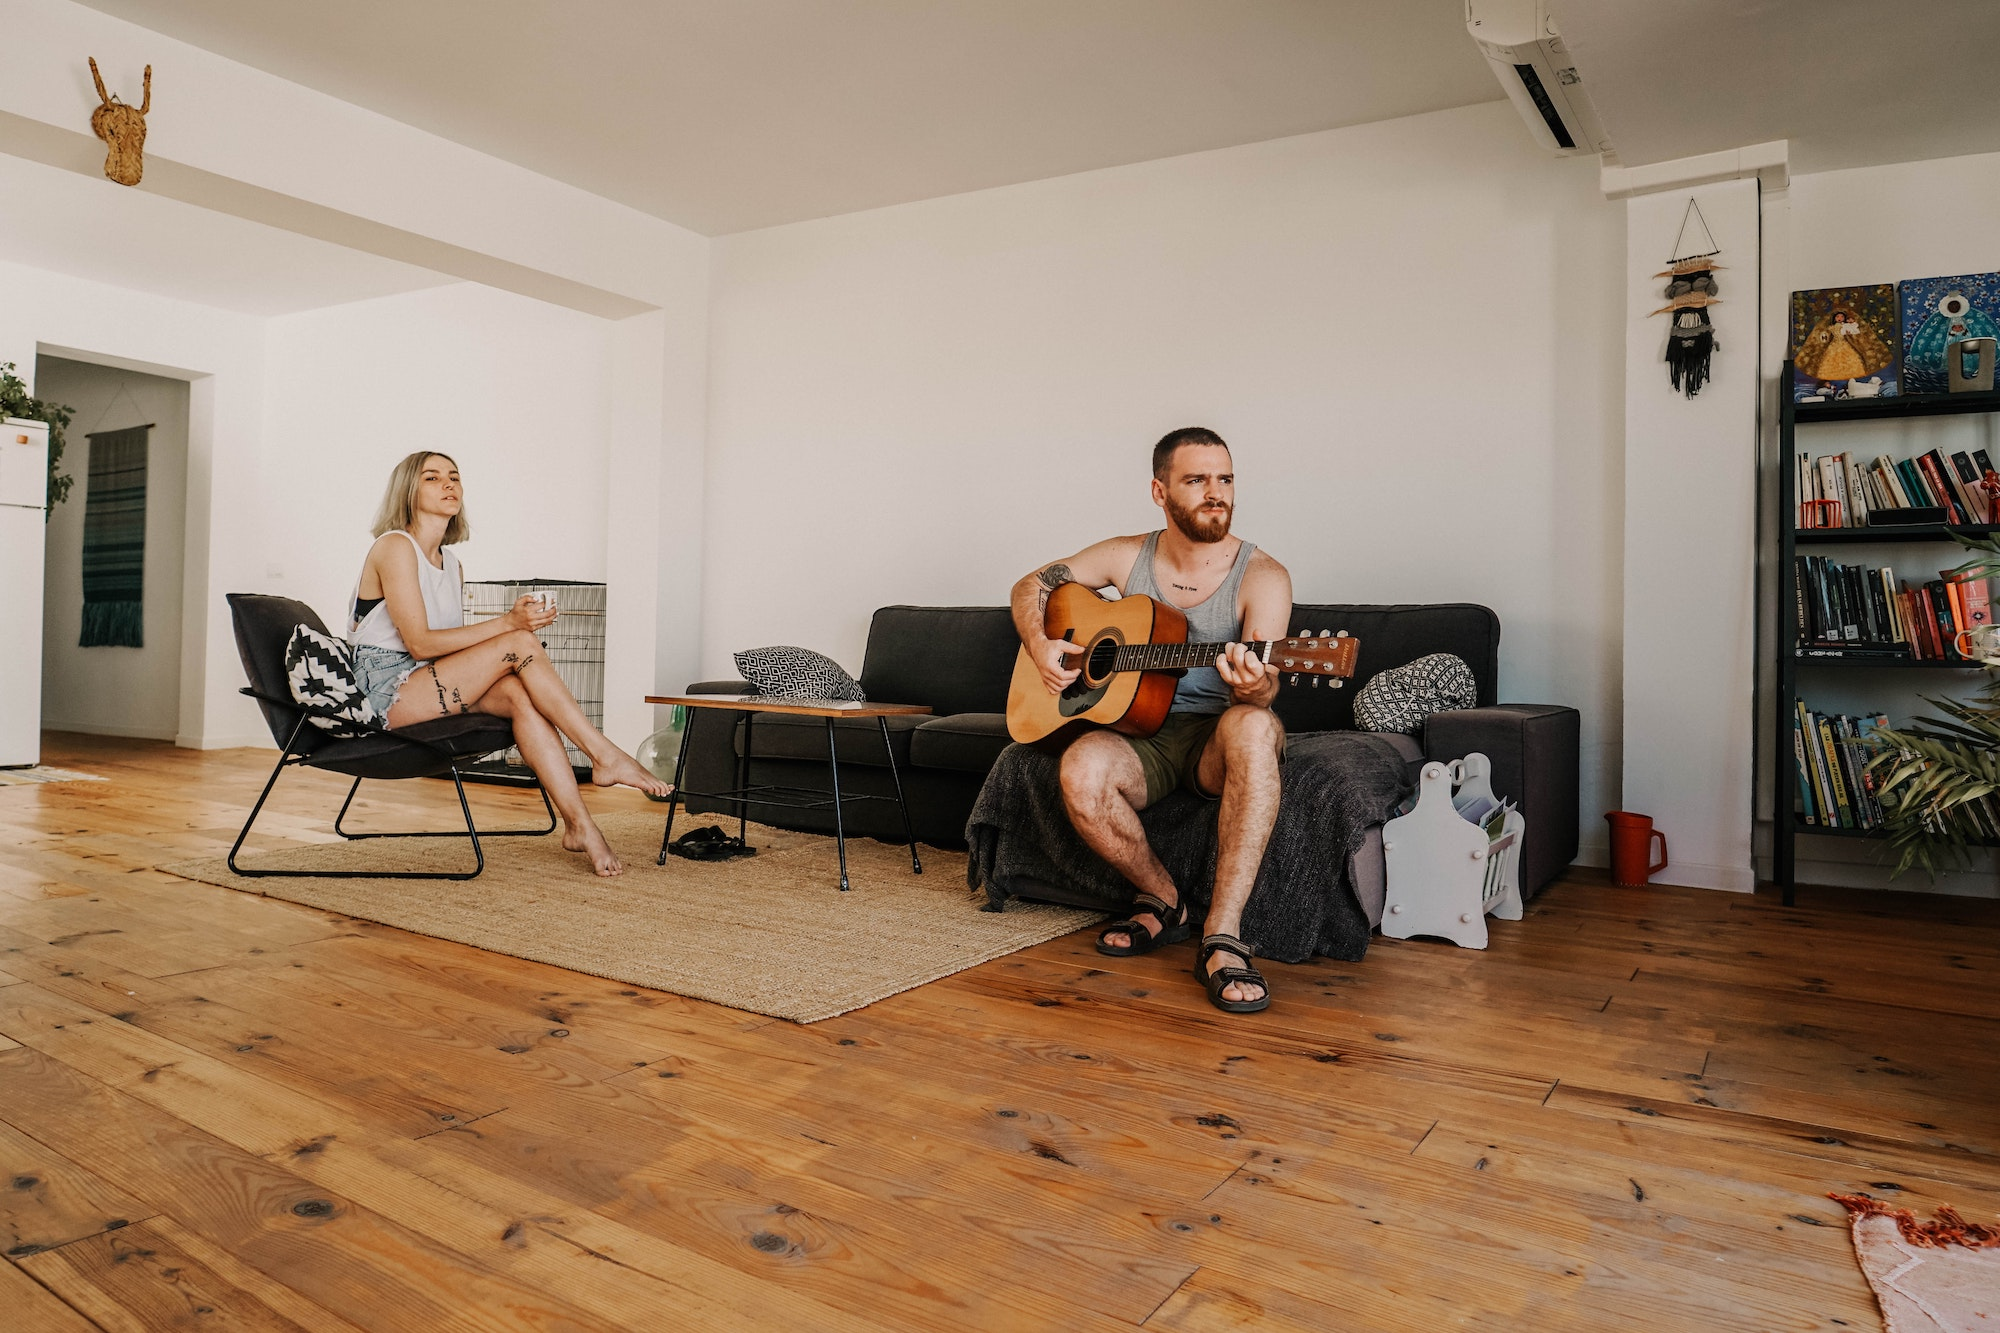 Two songwriters writing a song in the same room. One is holding a guitar.